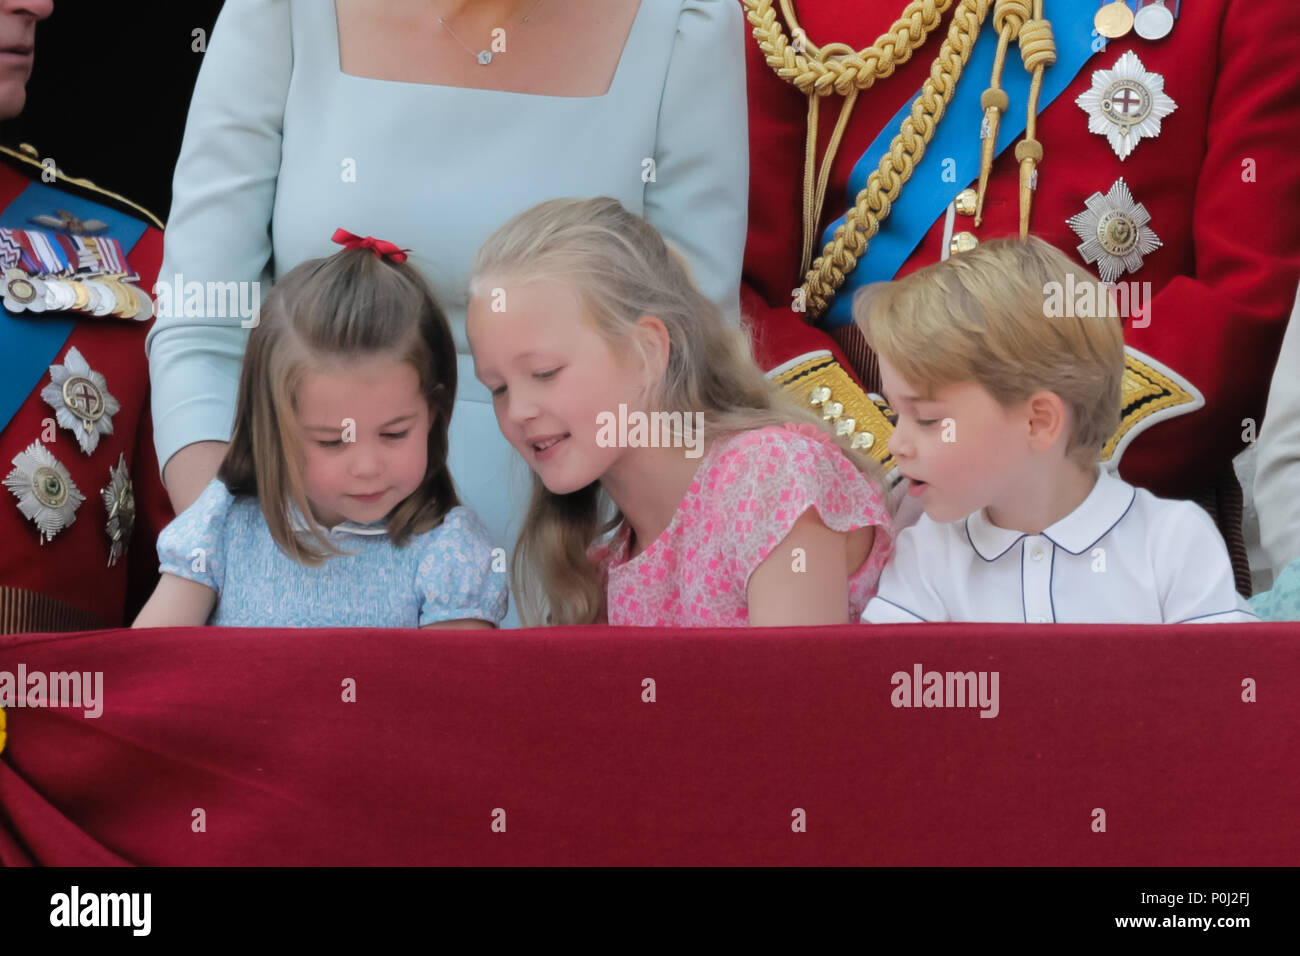 London, UK. 9th June 2018. Excited young Royals, L-R; Princess Charlotte of Cambridge, Savannah Phillips, Prince George of Cambridge enjoying the Trooping the Colour fly-past from the Buckingham Palace balcony. Credit: amanda rose/Alamy Live News - Stock Image